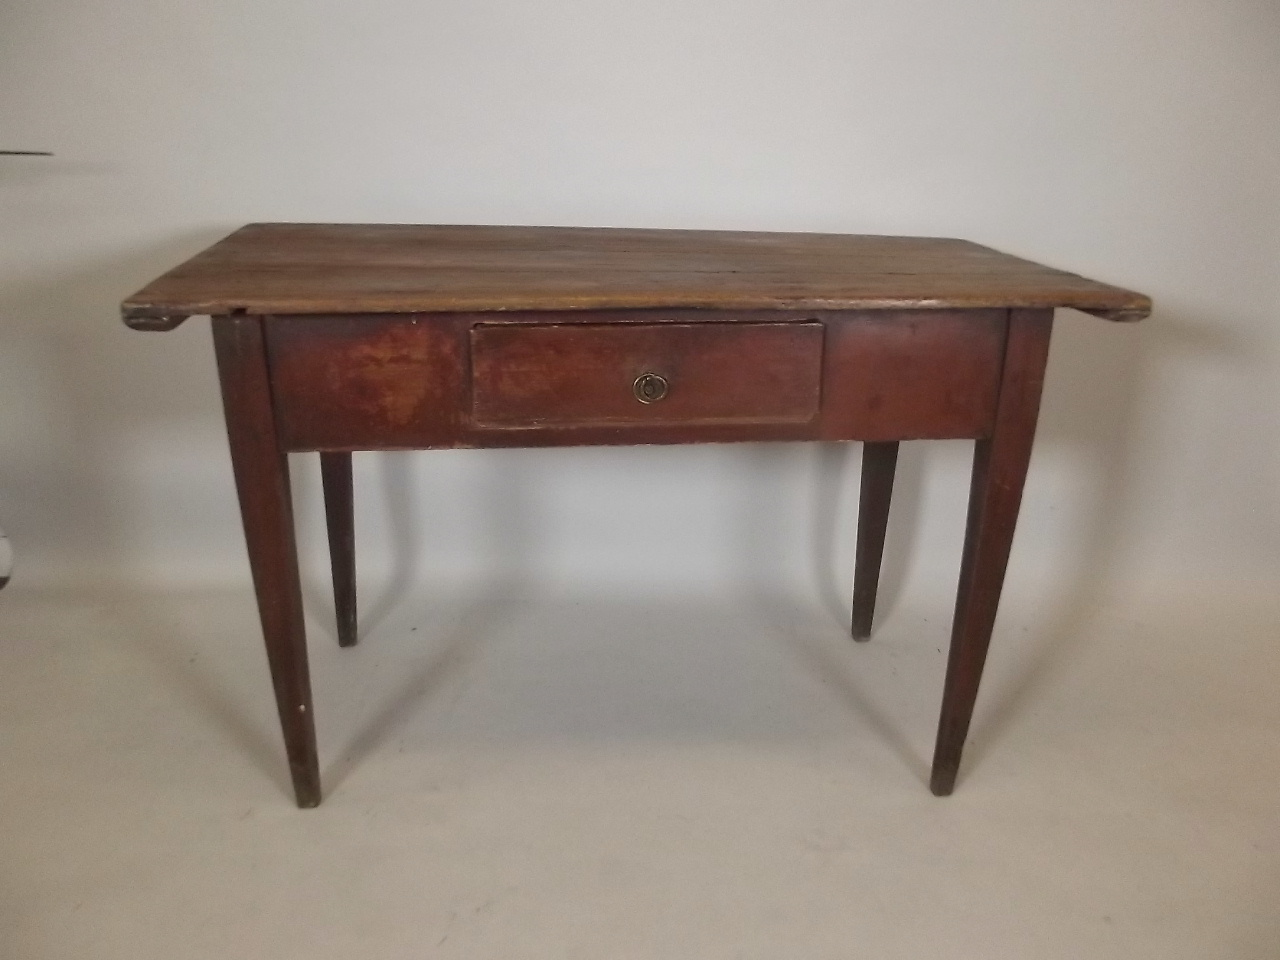 19c Scullery Table - £295